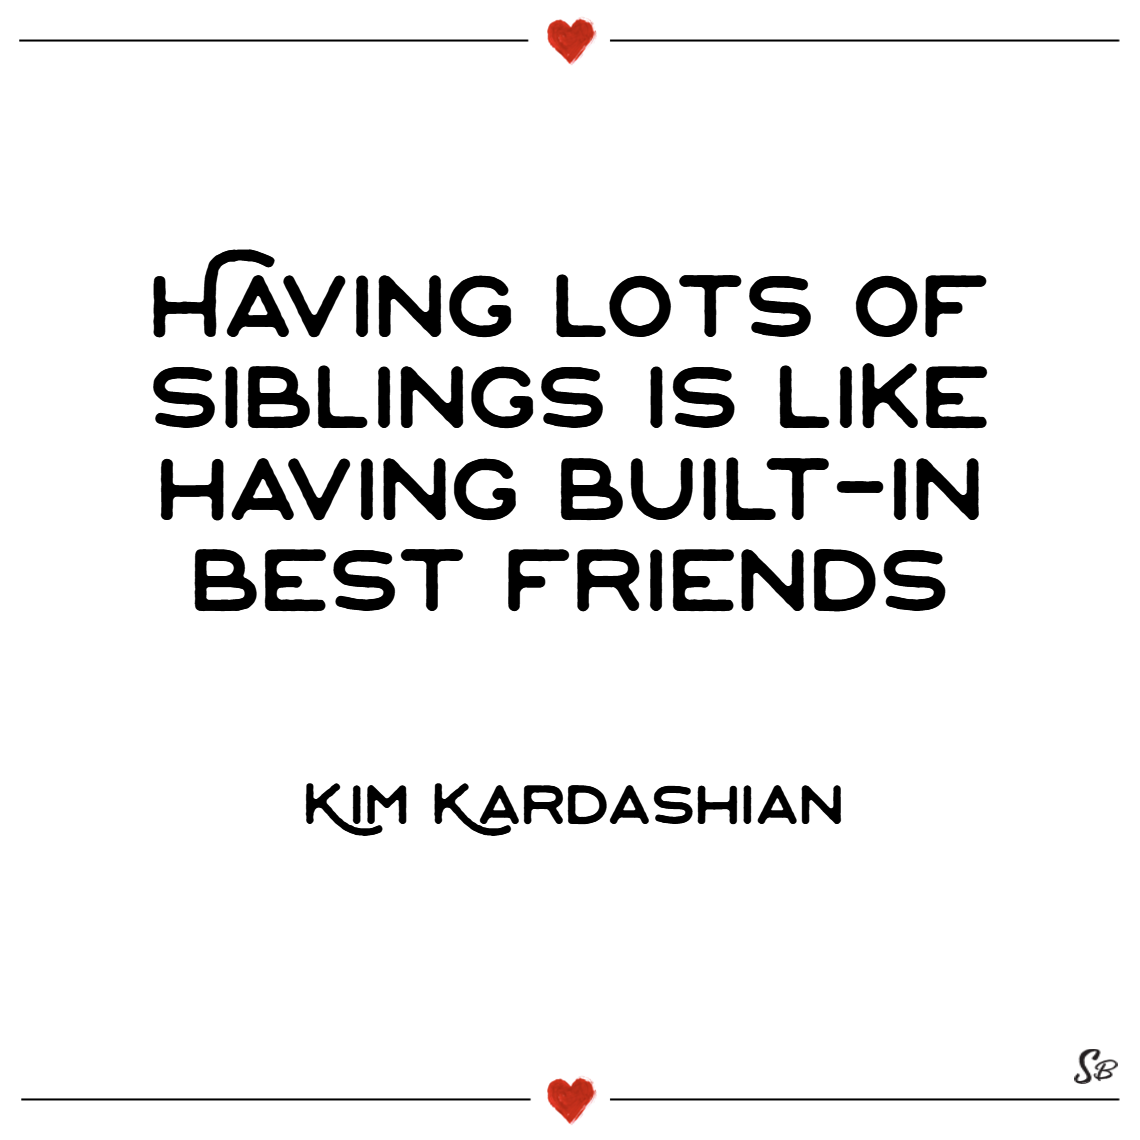 Having lots of siblings is like having built in best friends. – kim kardashian (1)